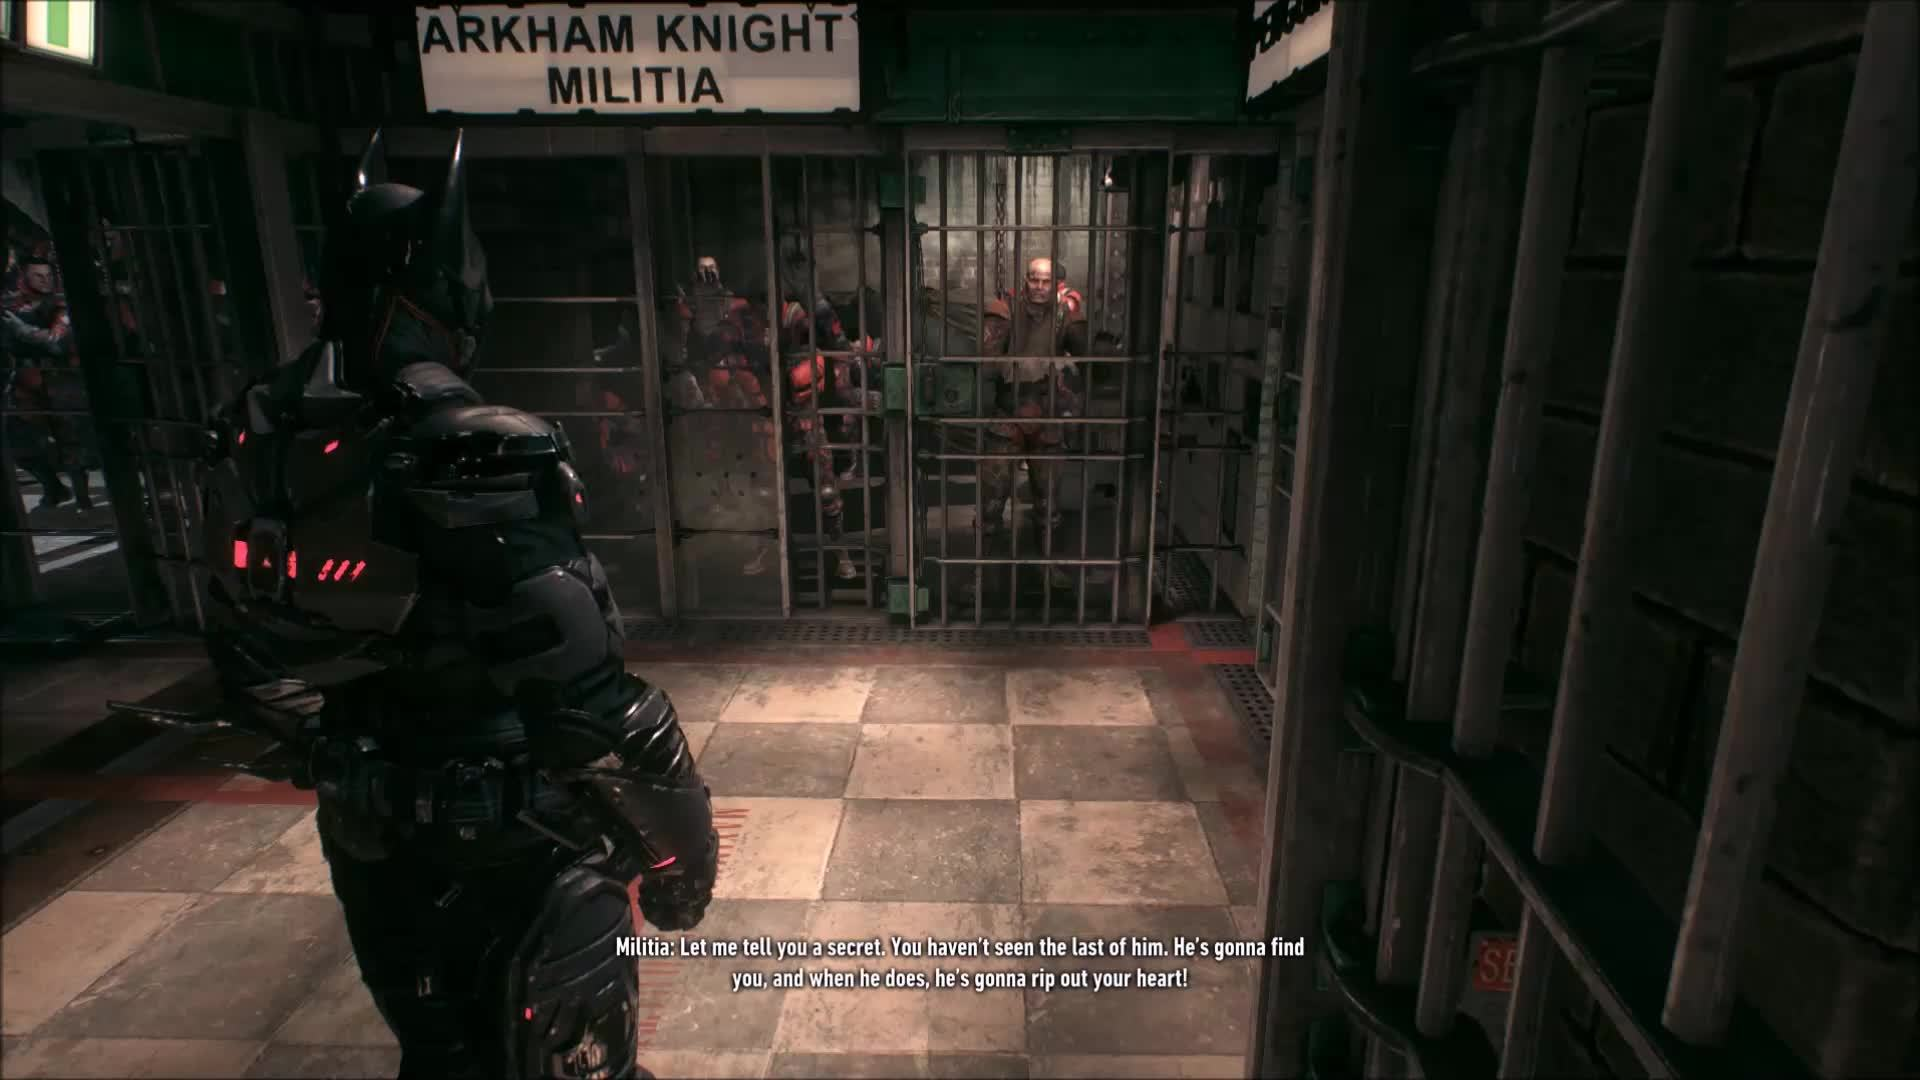 batmanarkham, The militia whose arm you break in the fist mission talks shit on you twice in the game, second time you don't even need to touch him (reddit) GIFs